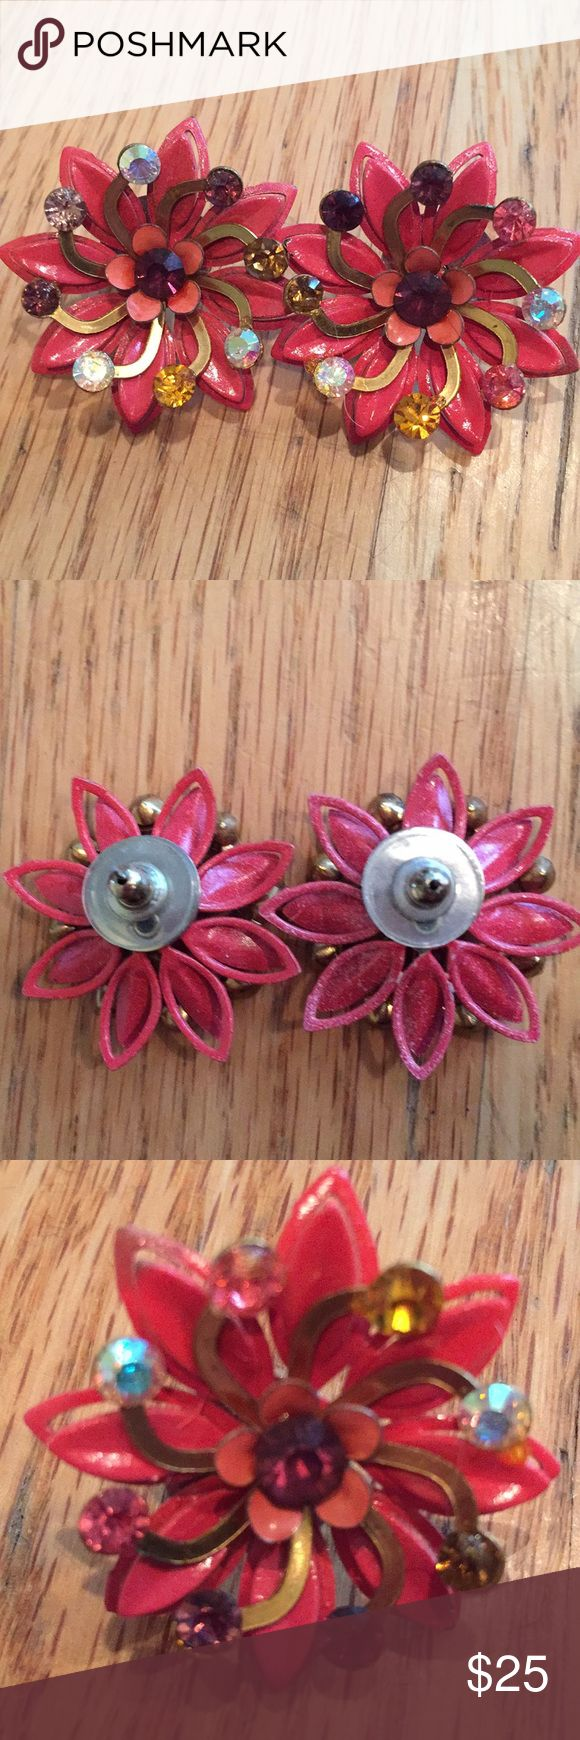 Gorgeous metal pink earrings Gorgeous metal pink earrings with Swarovski crystals. For pierced ears. Has center red crystal and red yellow and white crystals on petals. Jewelry Earrings